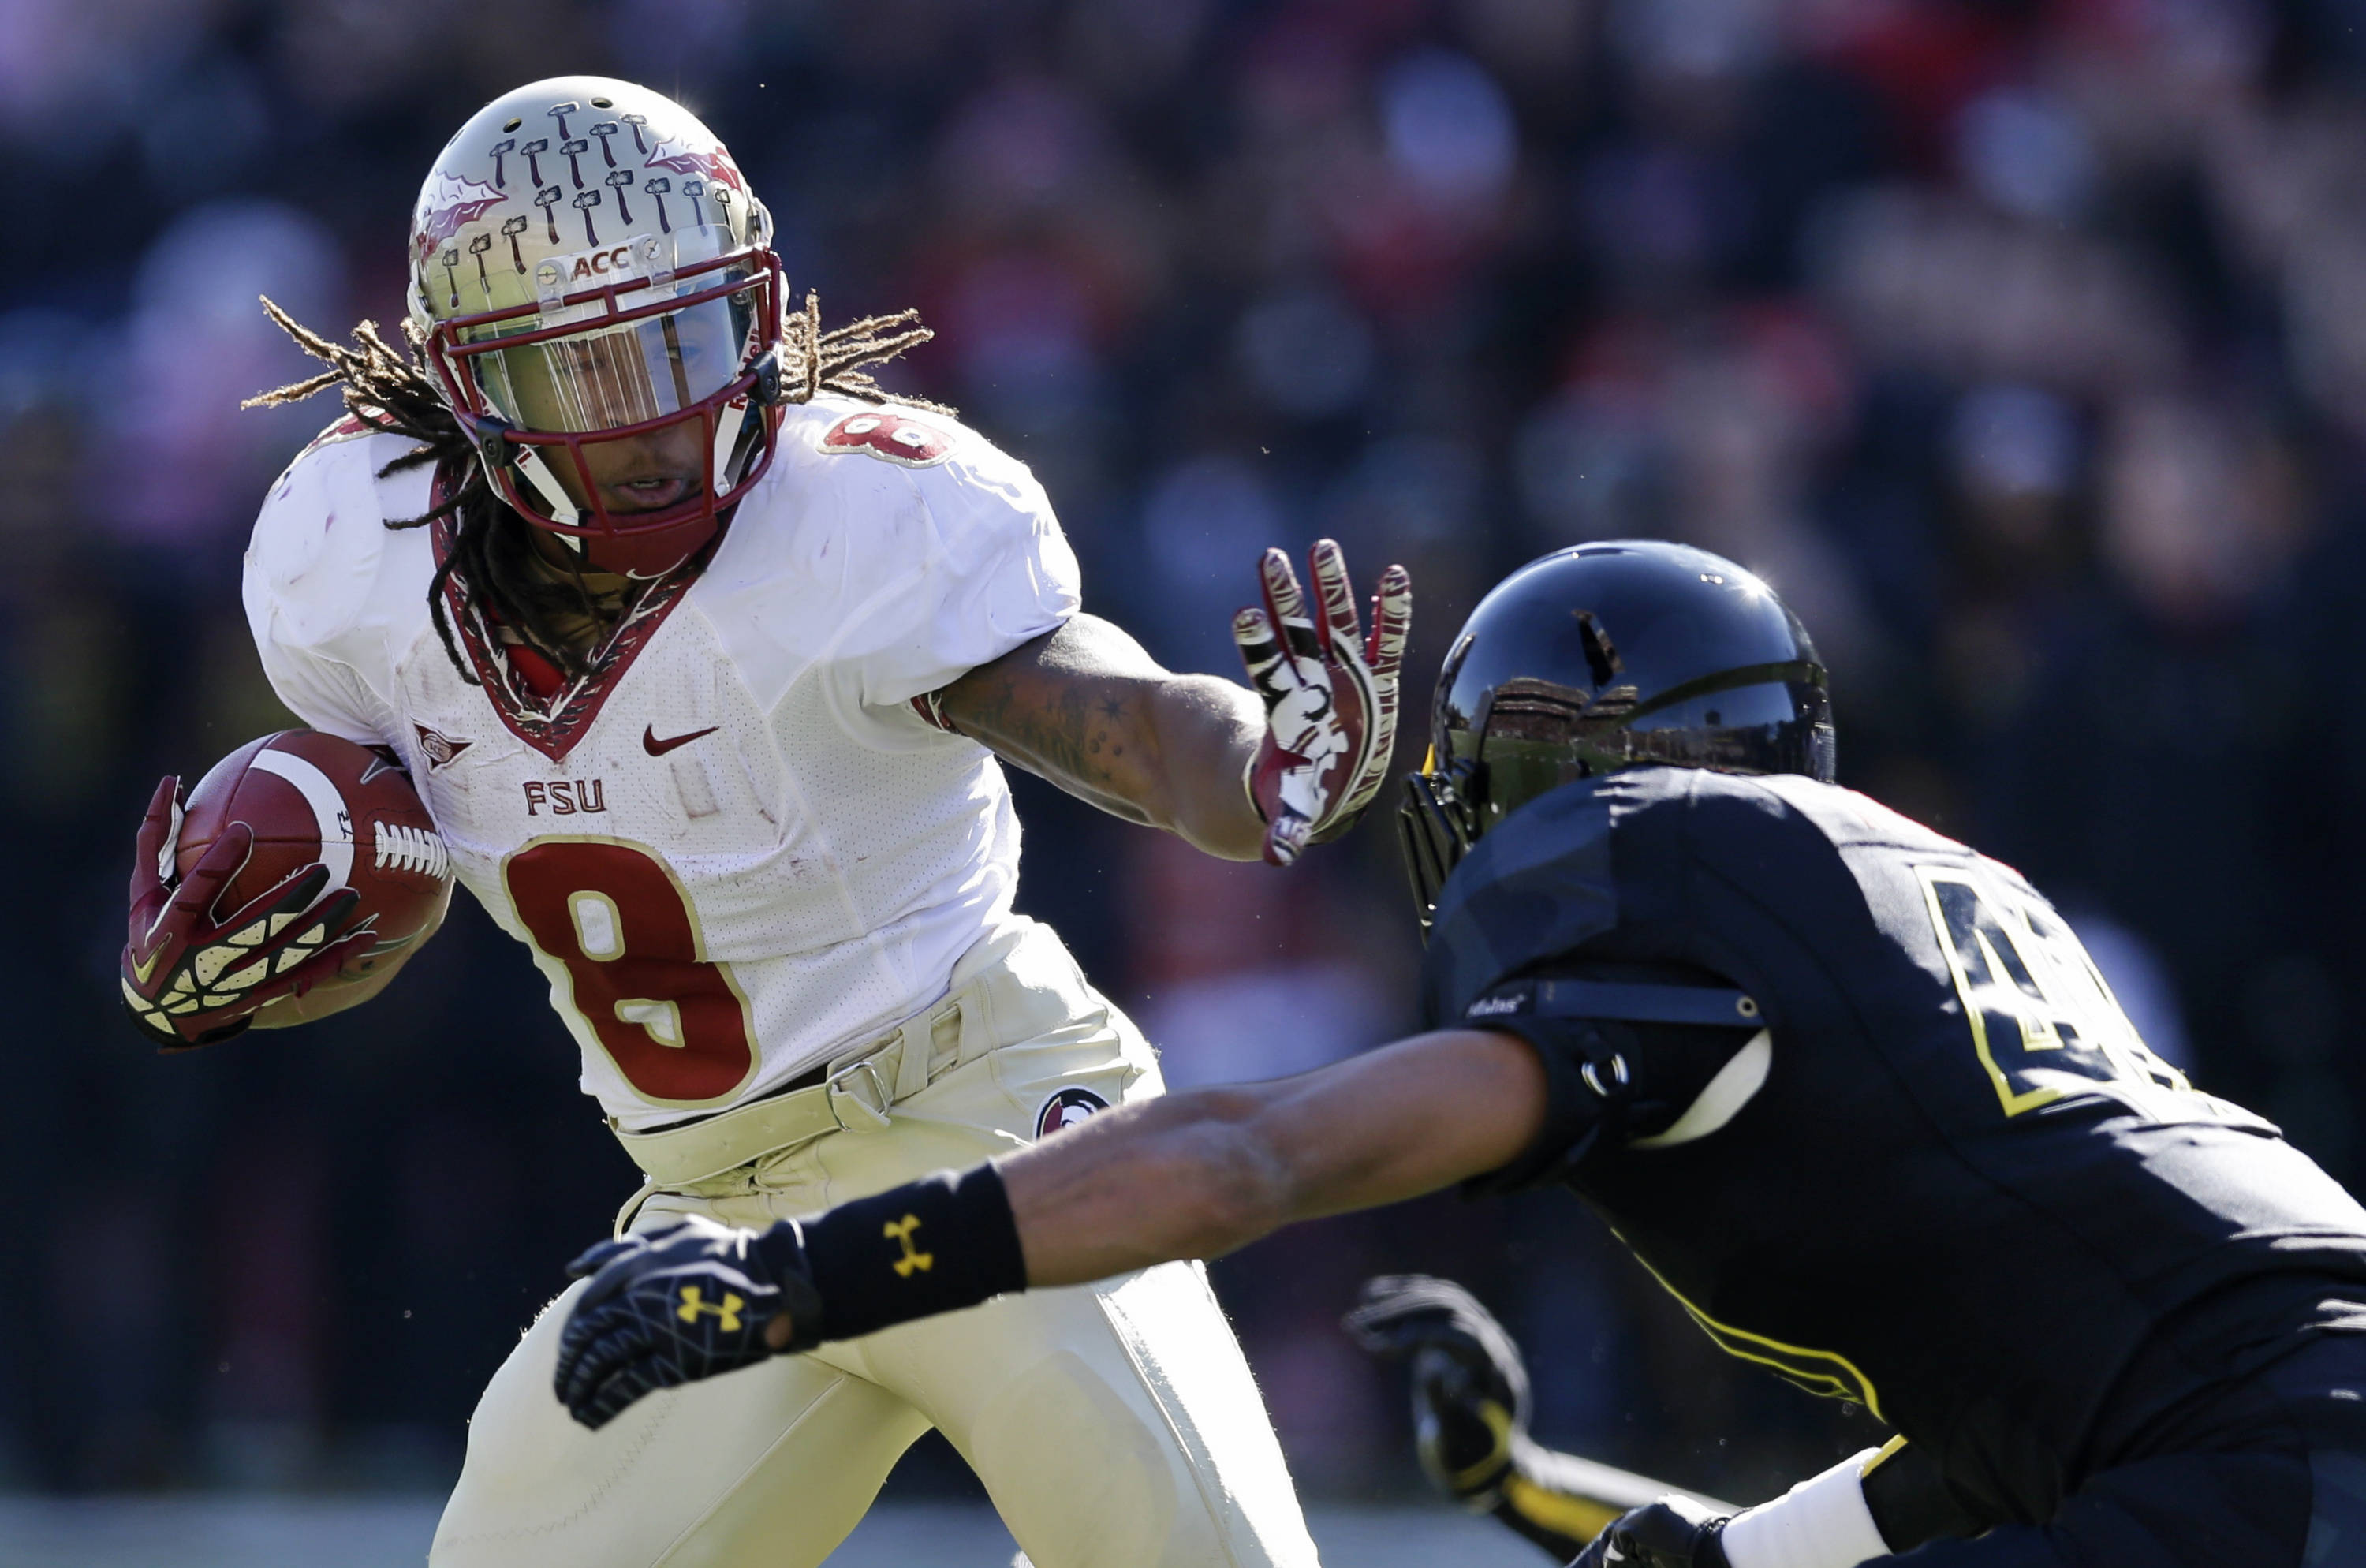 Tailback Devonta Freeman, left, rushes past Maryland defensive back Matt Robinson in the first half of an NCAA college football game in College Park, Md., Saturday, Nov. 17, 2012. (AP Photo/Patrick Semansky)